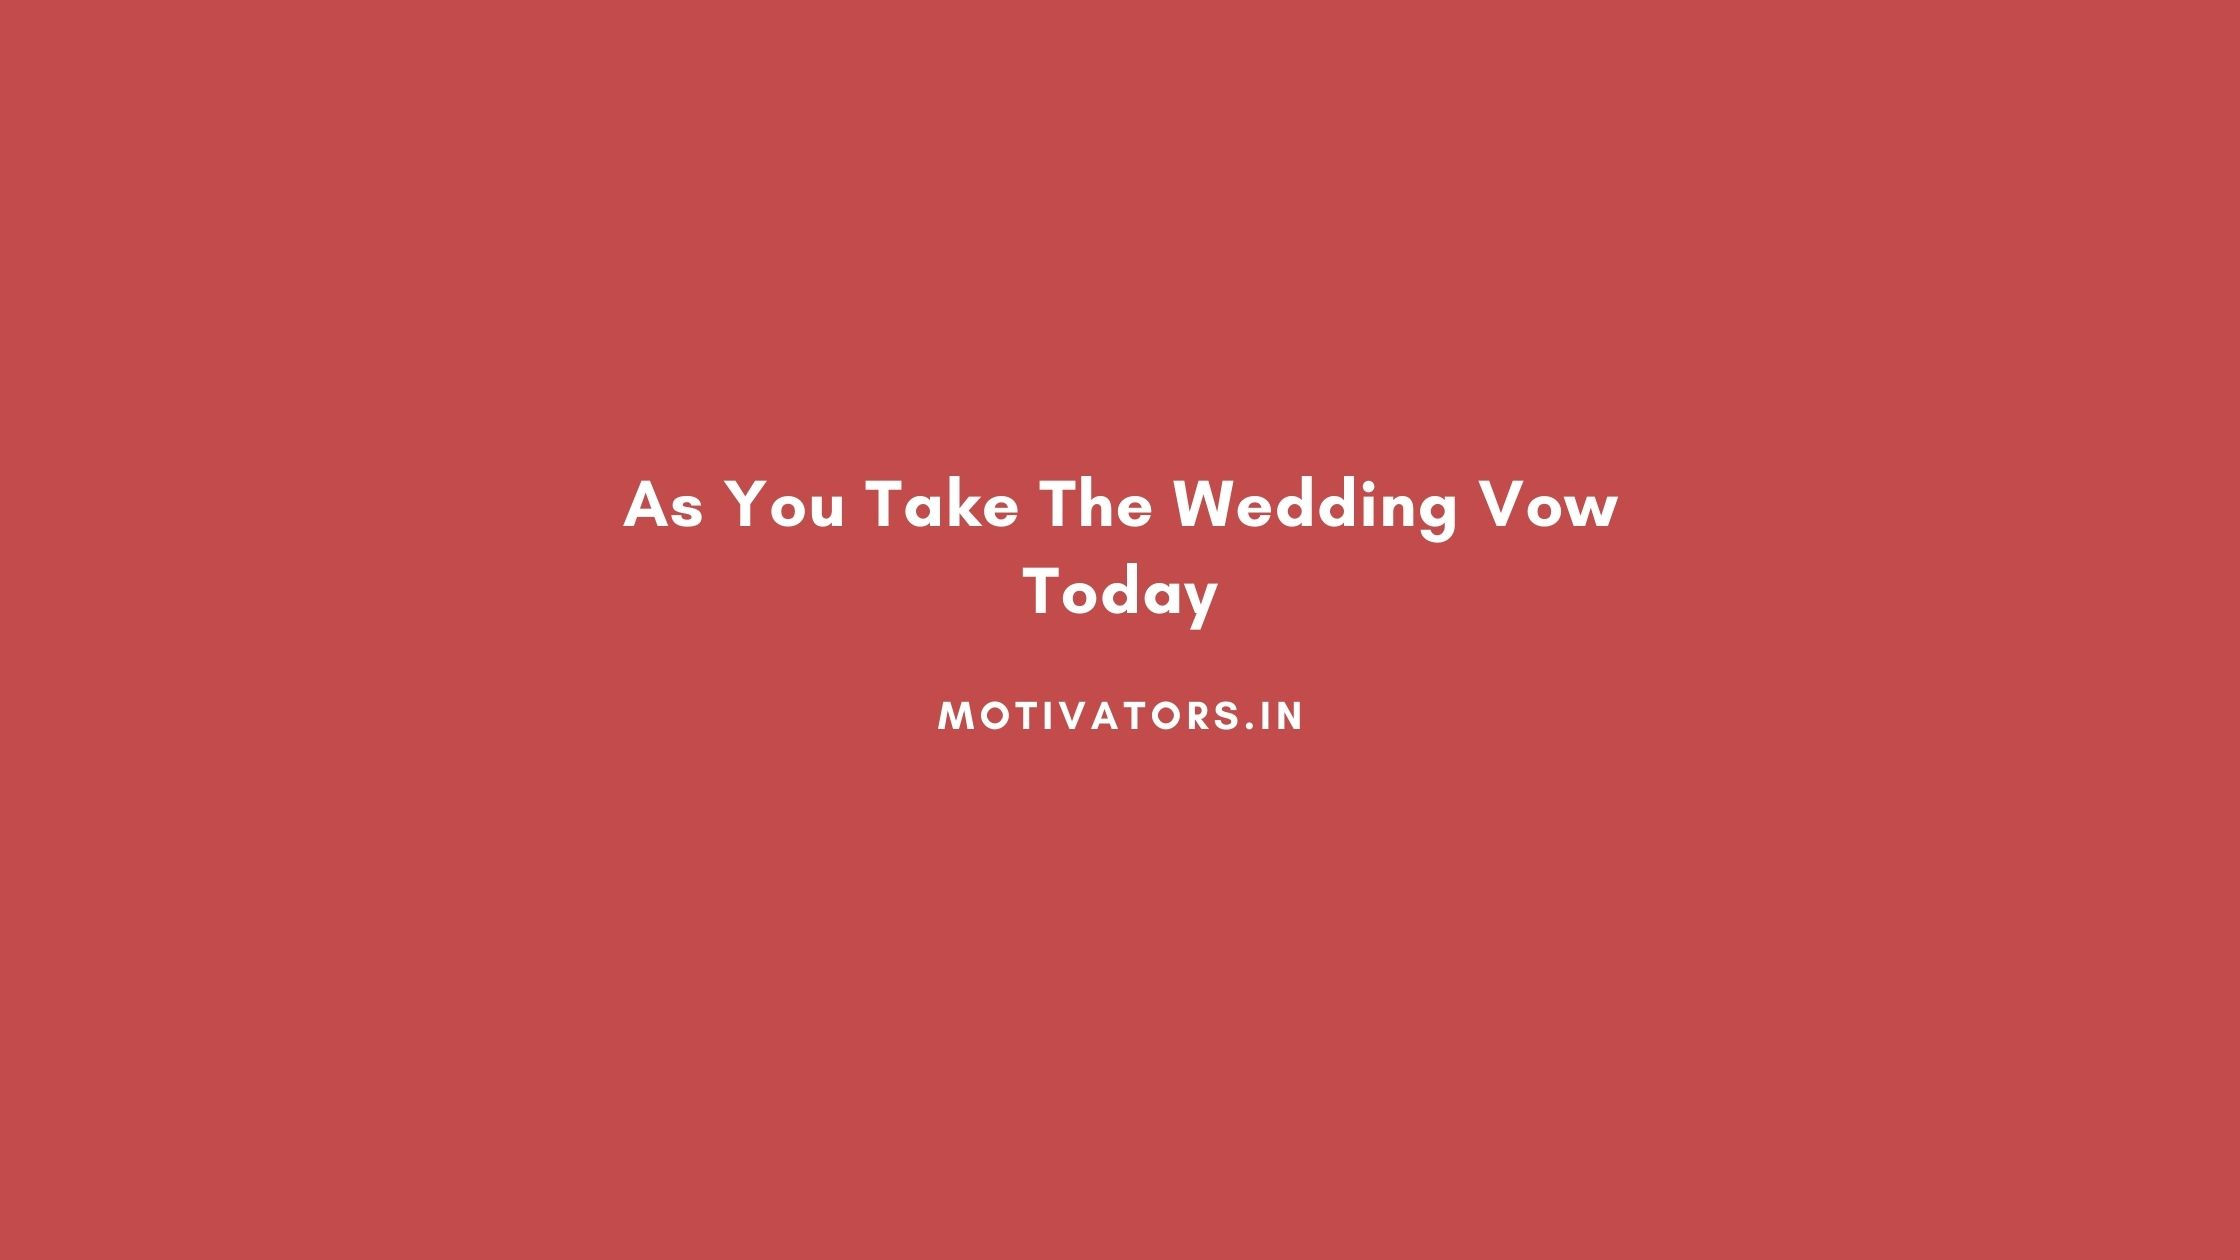 As You Take The Wedding Vow Today